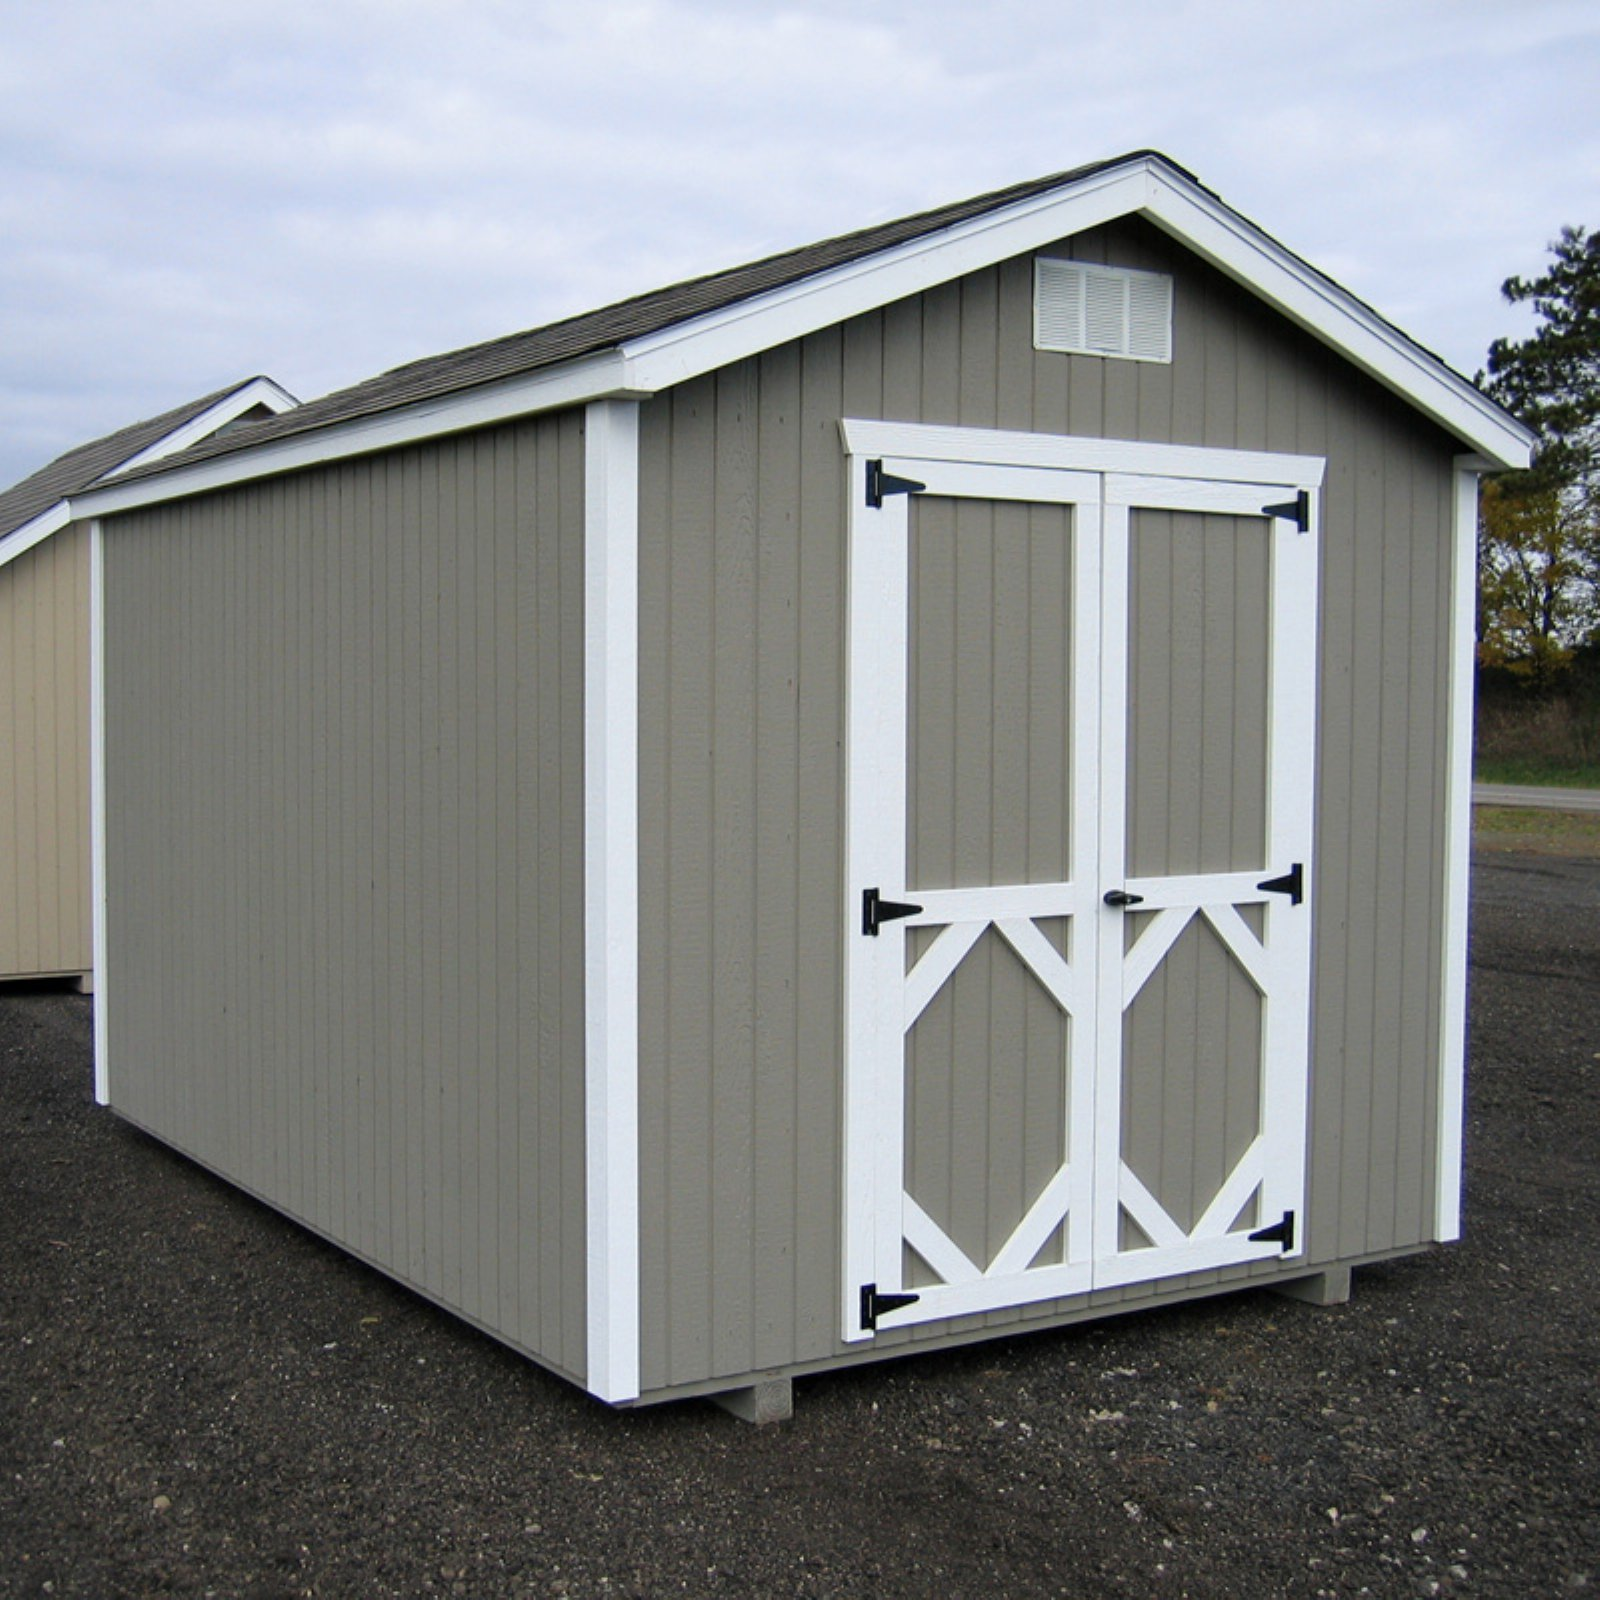 Little Cottage 12 x 10 ft. Classic Wood Gable Panelized Storage Shed